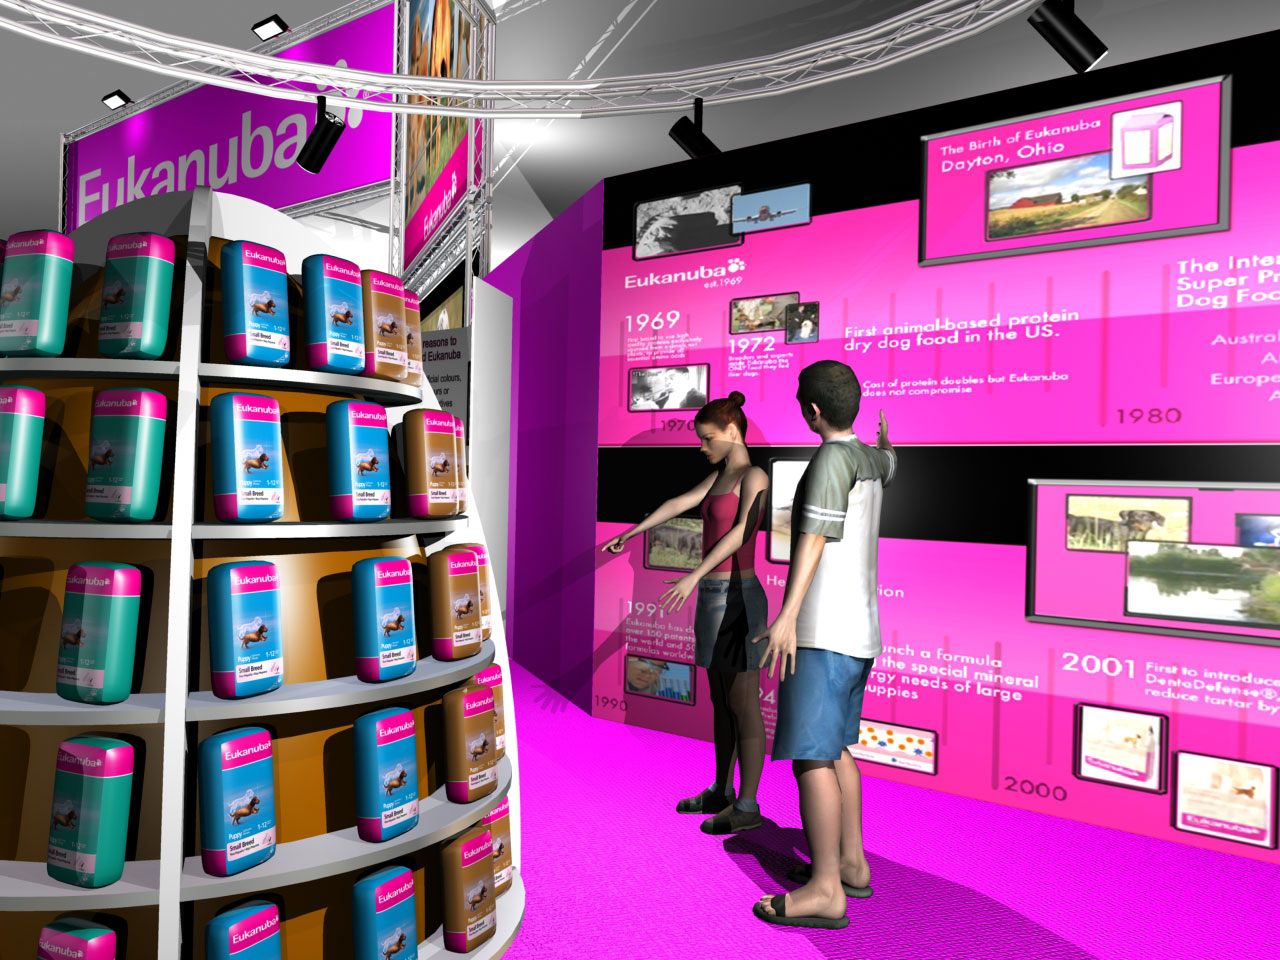 Exhibition Stand Visuals : Exhibition stand visuals iams eukanuba wordsearch ltd